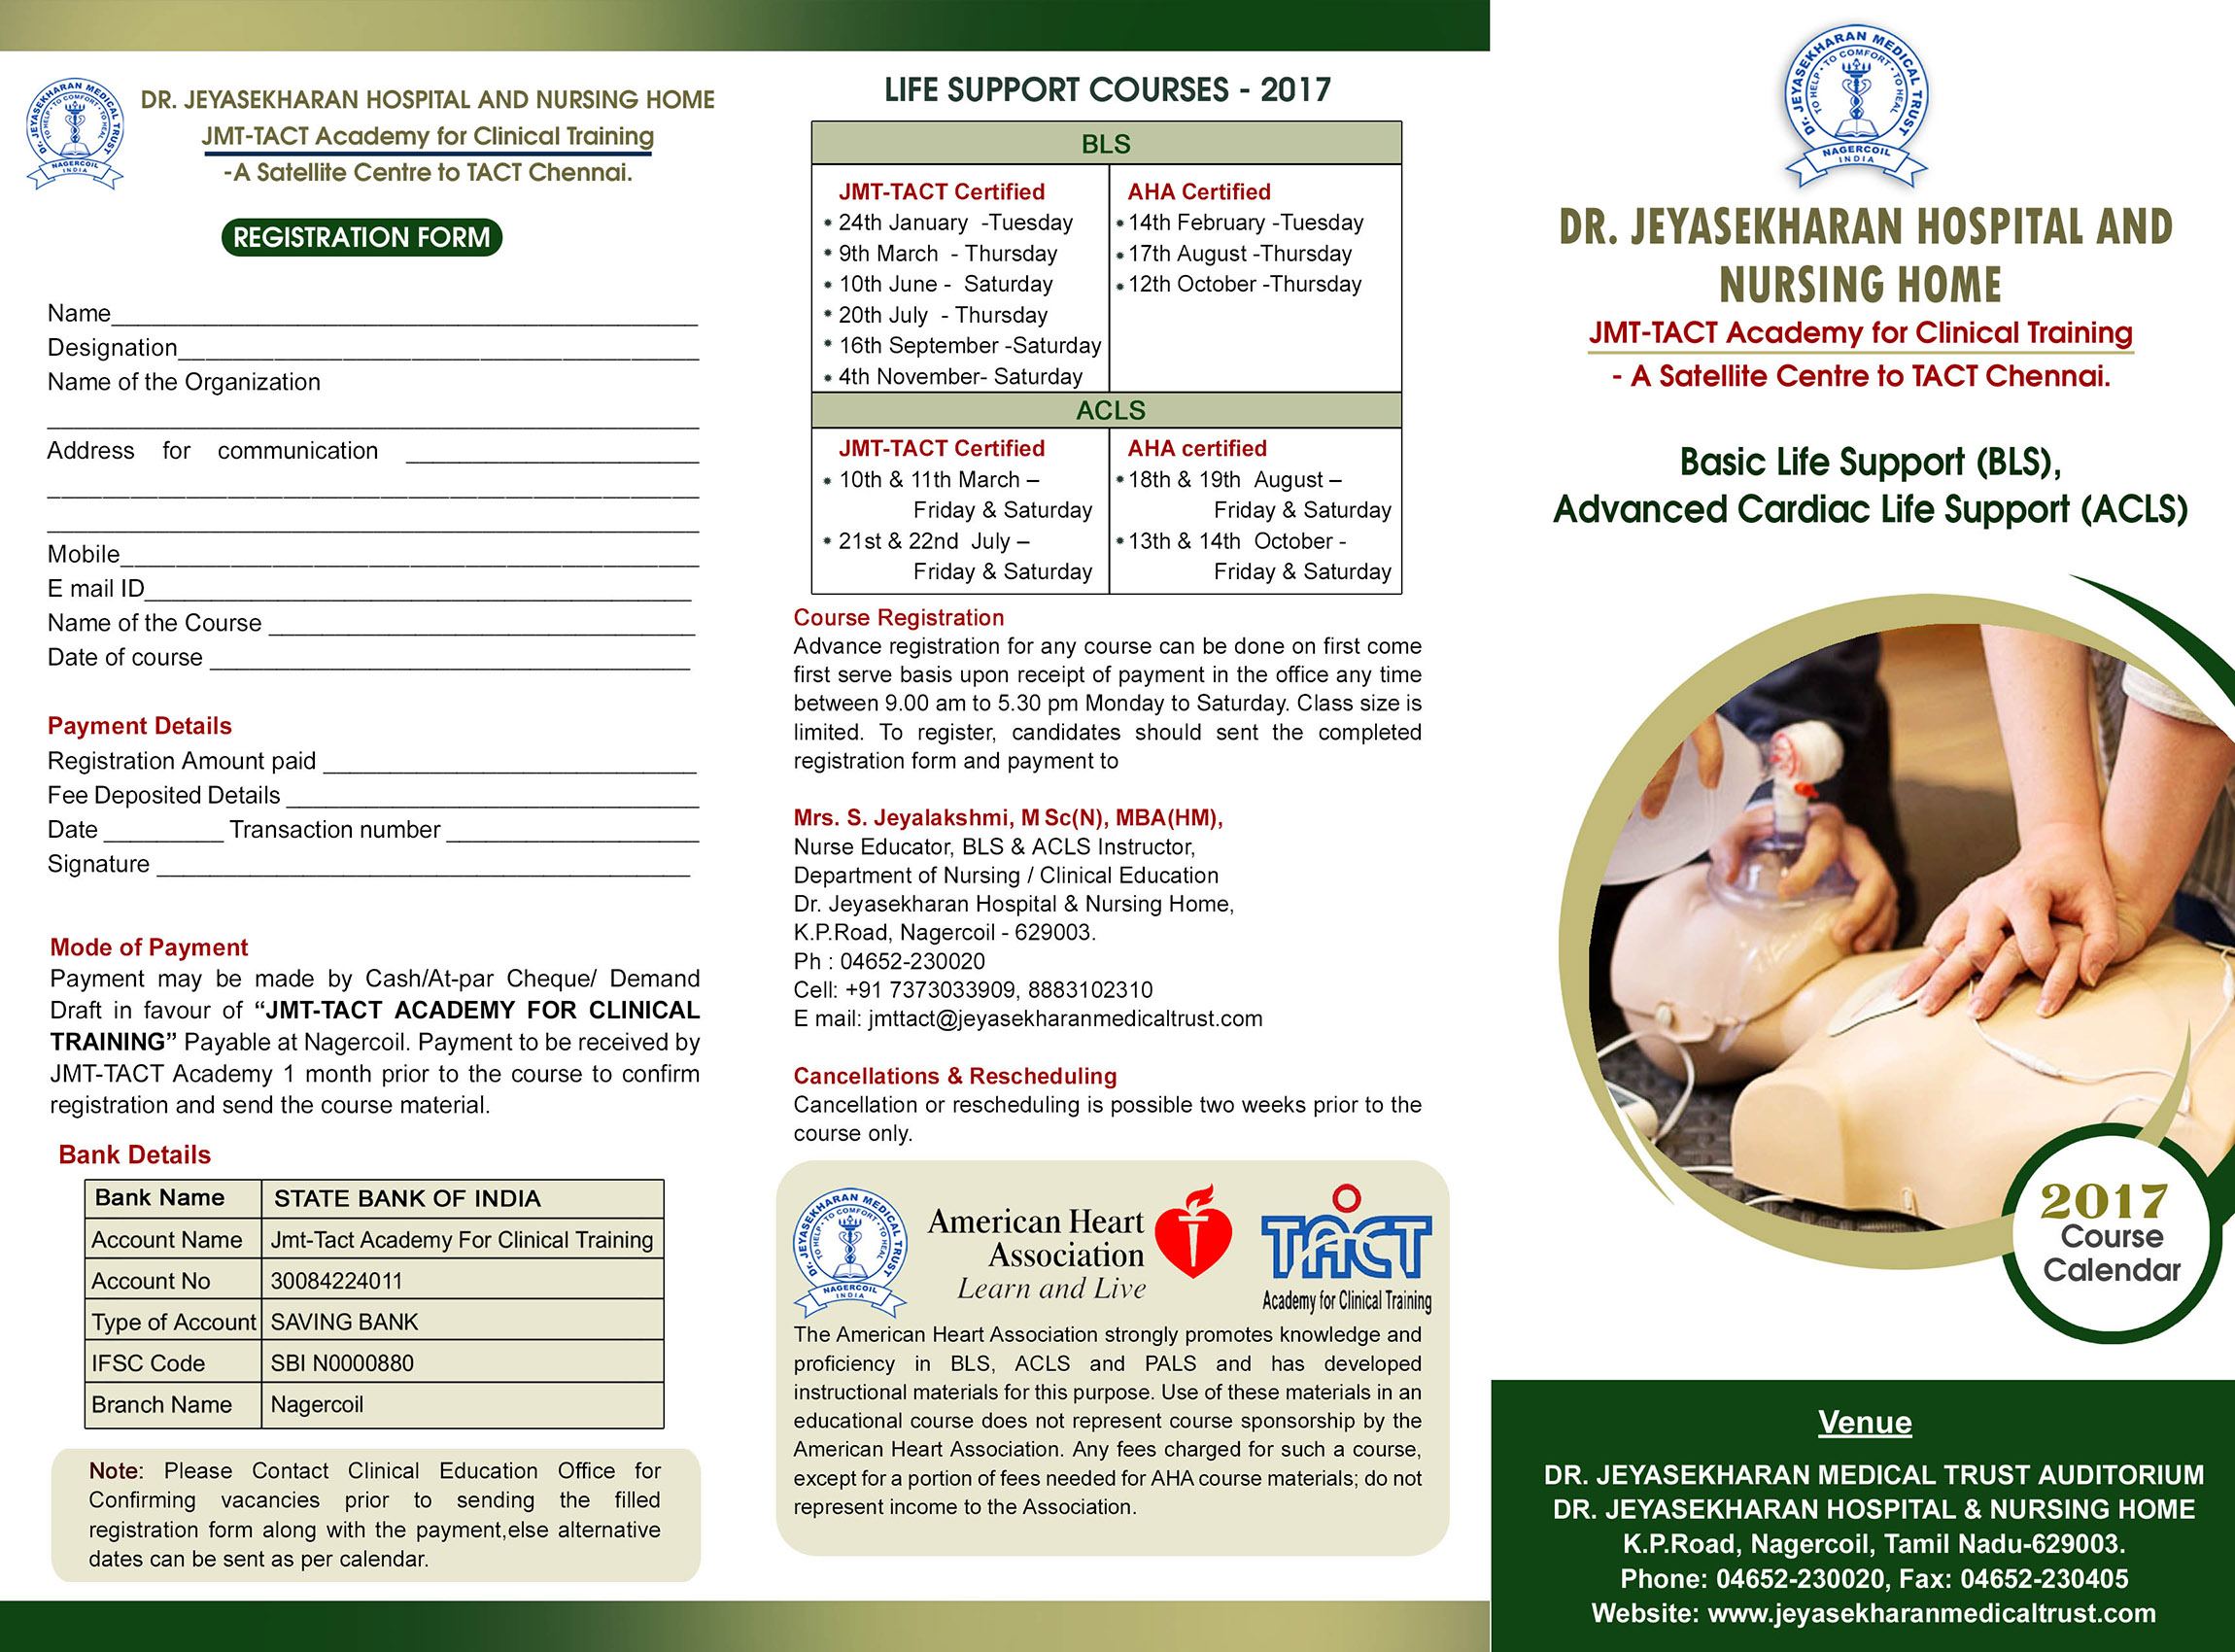 Aha Certified Basic Life Support Bls Course Dr Jeyasekharan